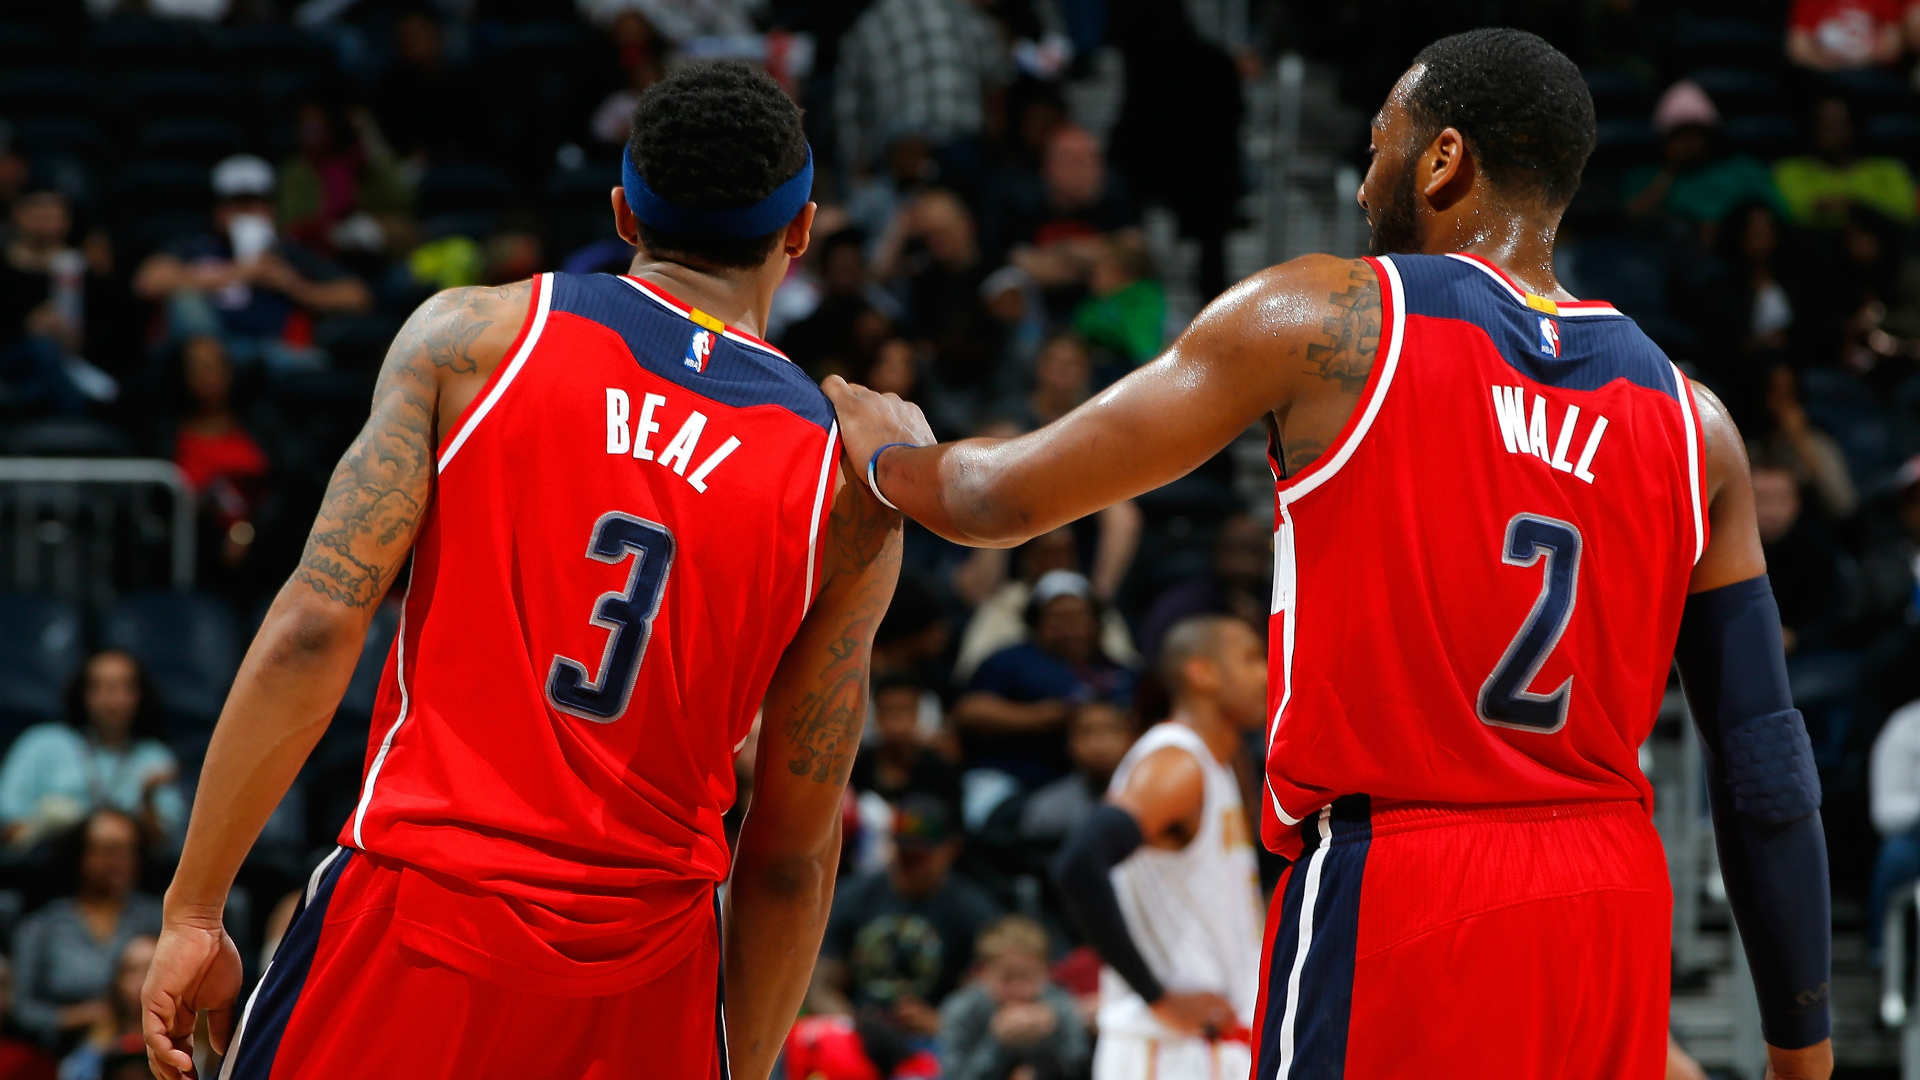 Bradley Beal says he and John Wall should've had better year for Wizards |  NBA | Sporting News